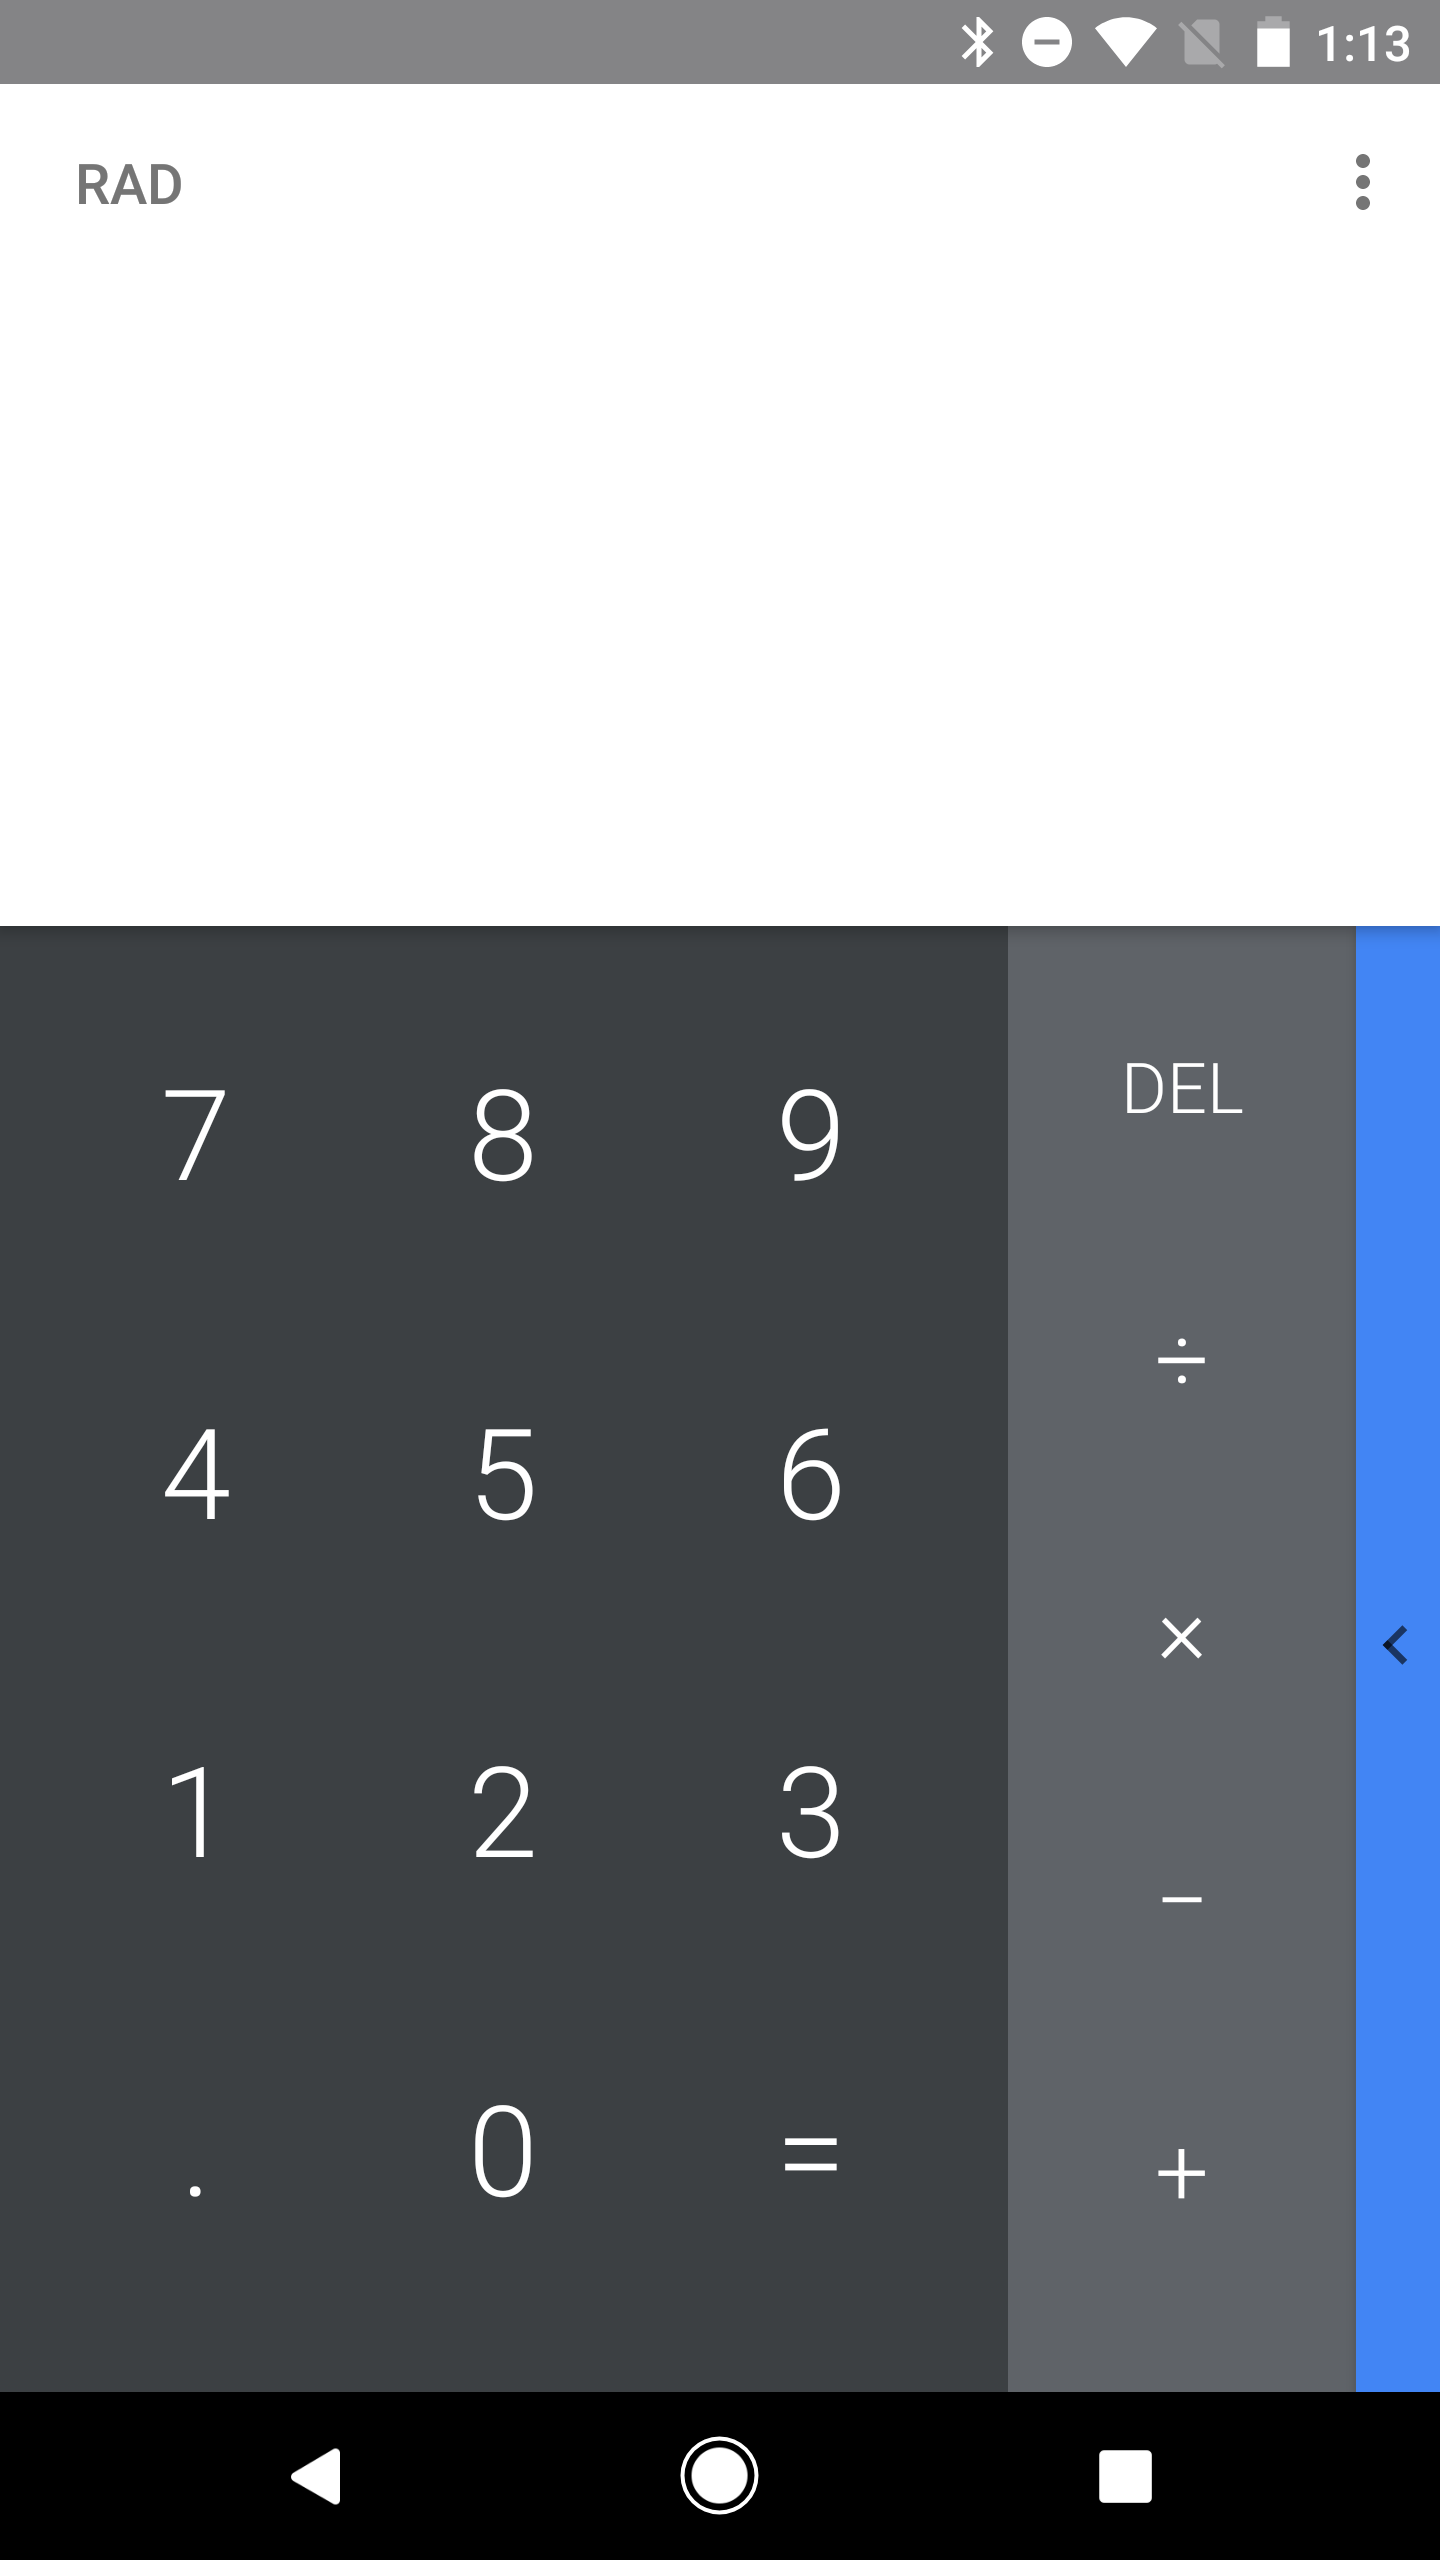 how to change from rad to deg calculator